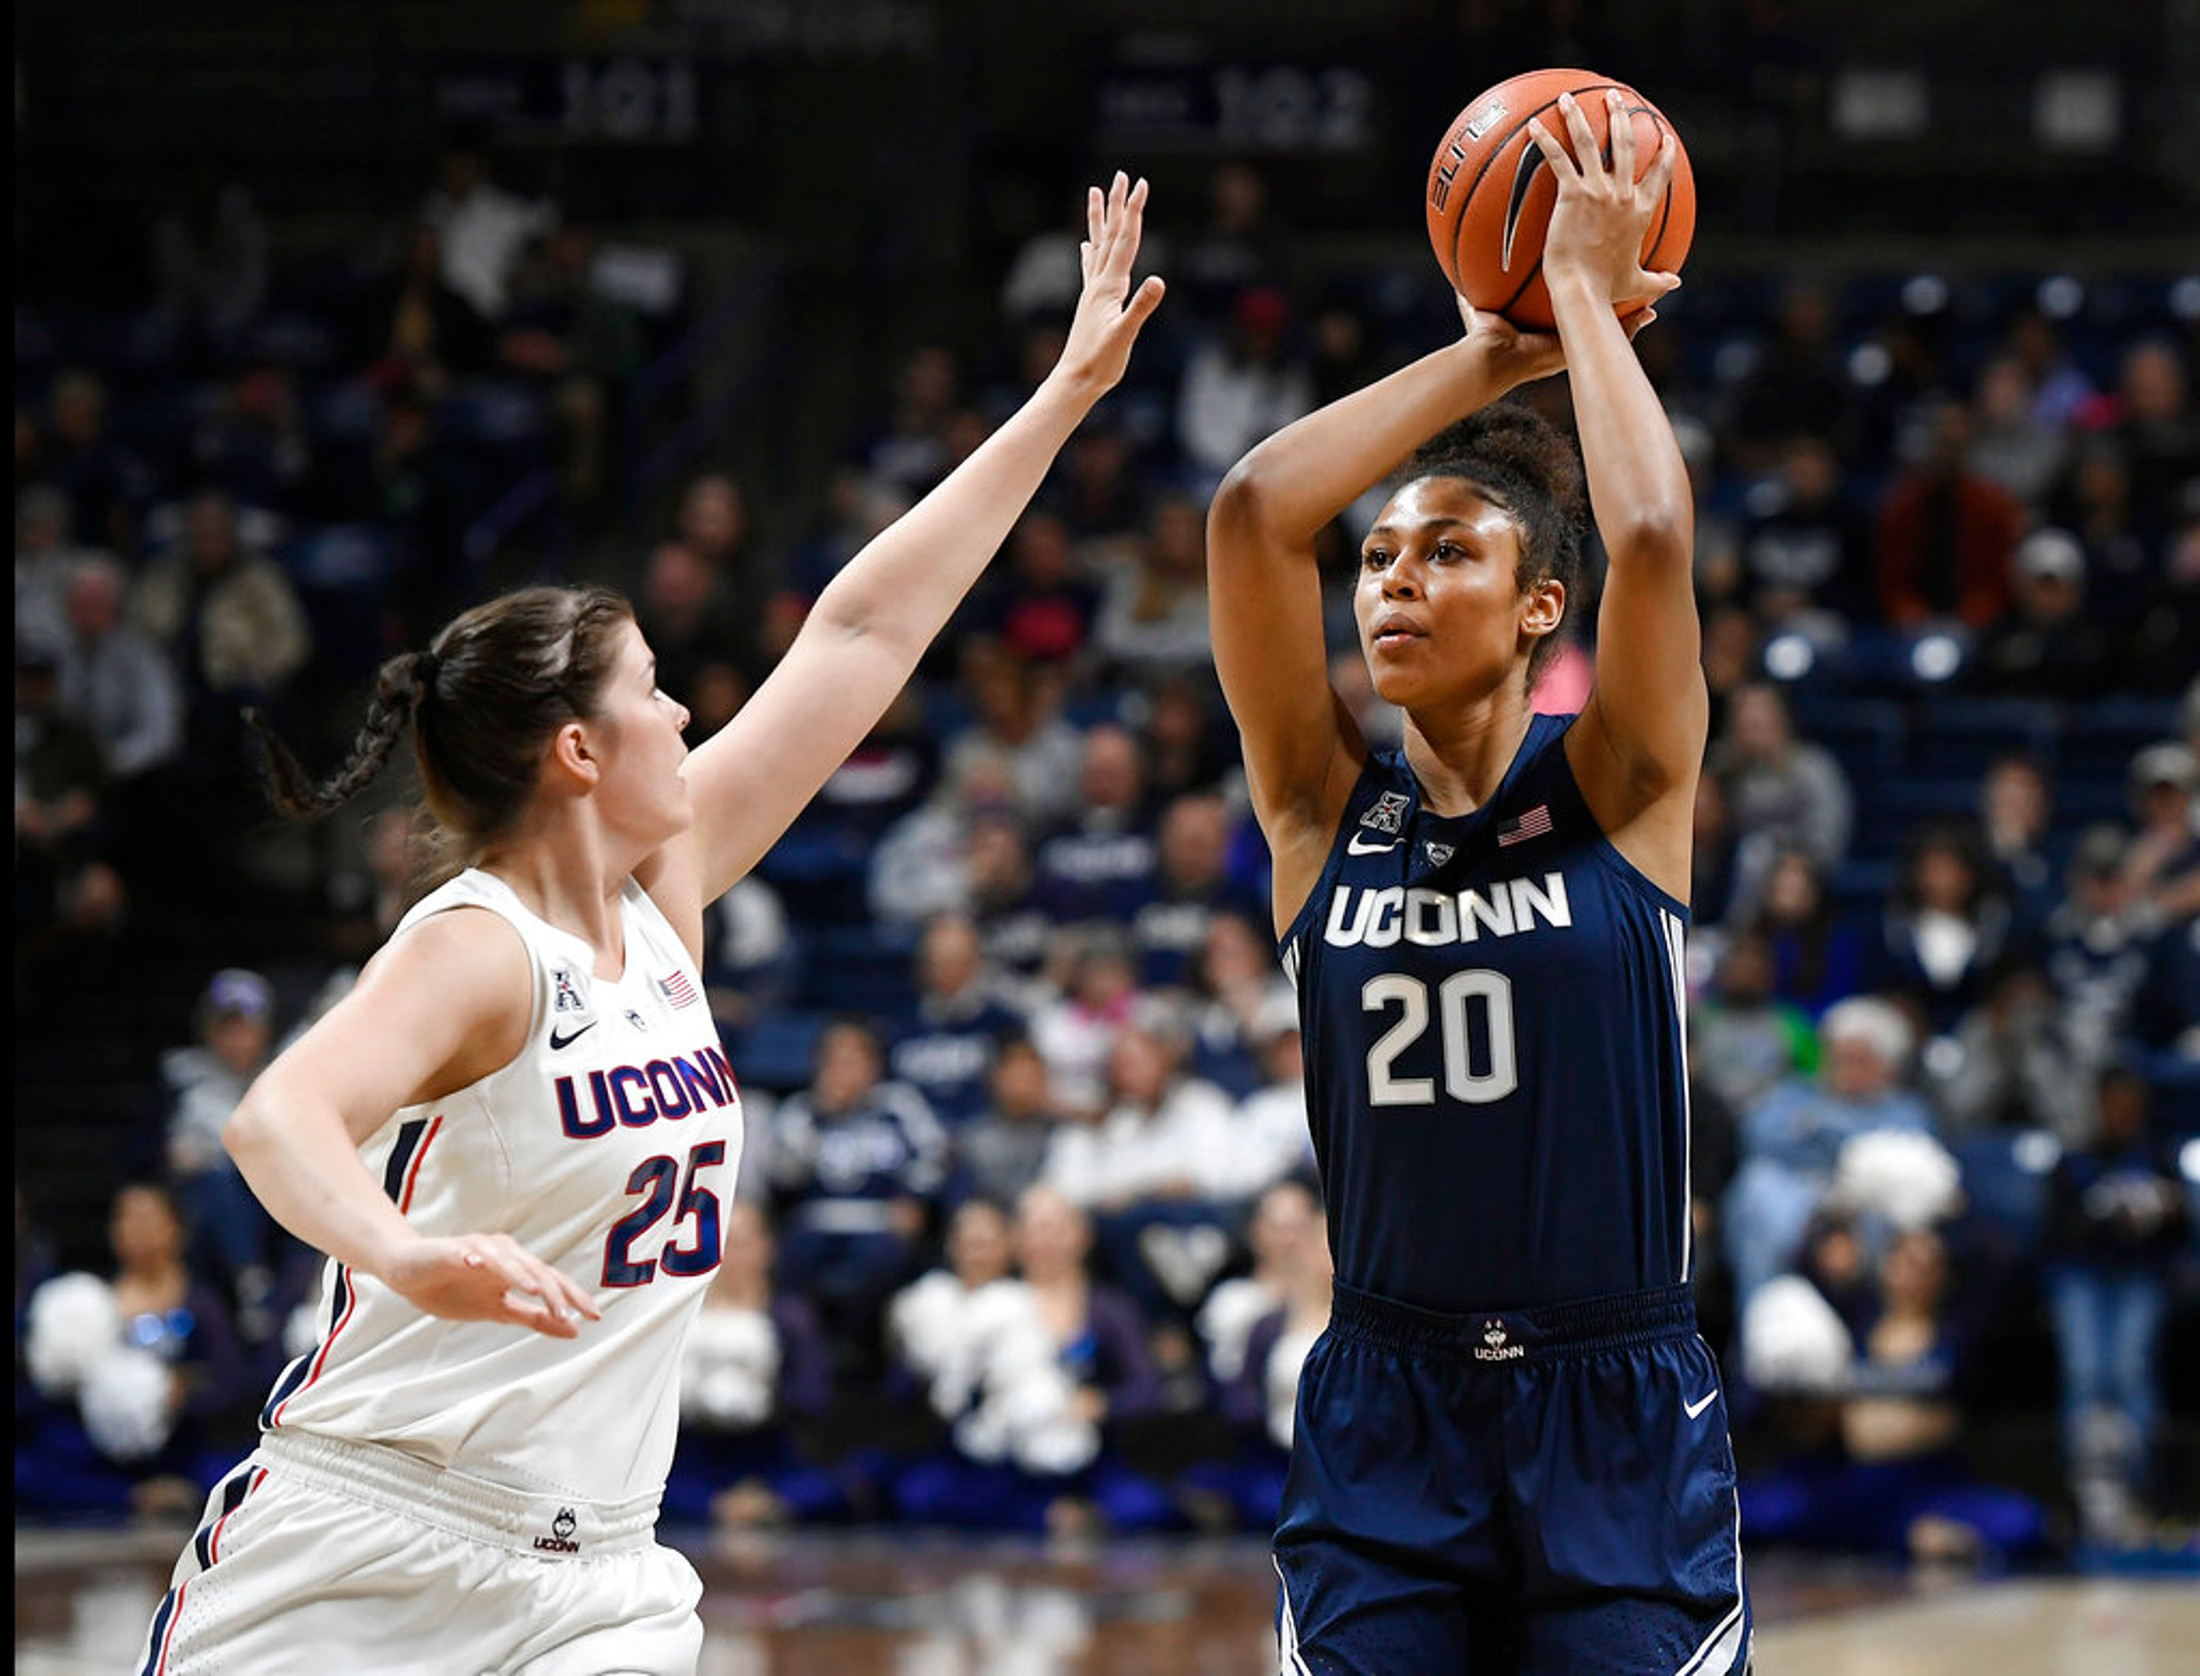 FILE - In this Friday, Oct. 12, 2018 file photo, Connecticut's Olivia Nelson-Ododa is guarded by Connecticut's Kyla Irwin during the UConn's men's and women's basketball teams annual First Night celebration, in Storrs, Conn. (AP Photo/Jessica Hill, File)